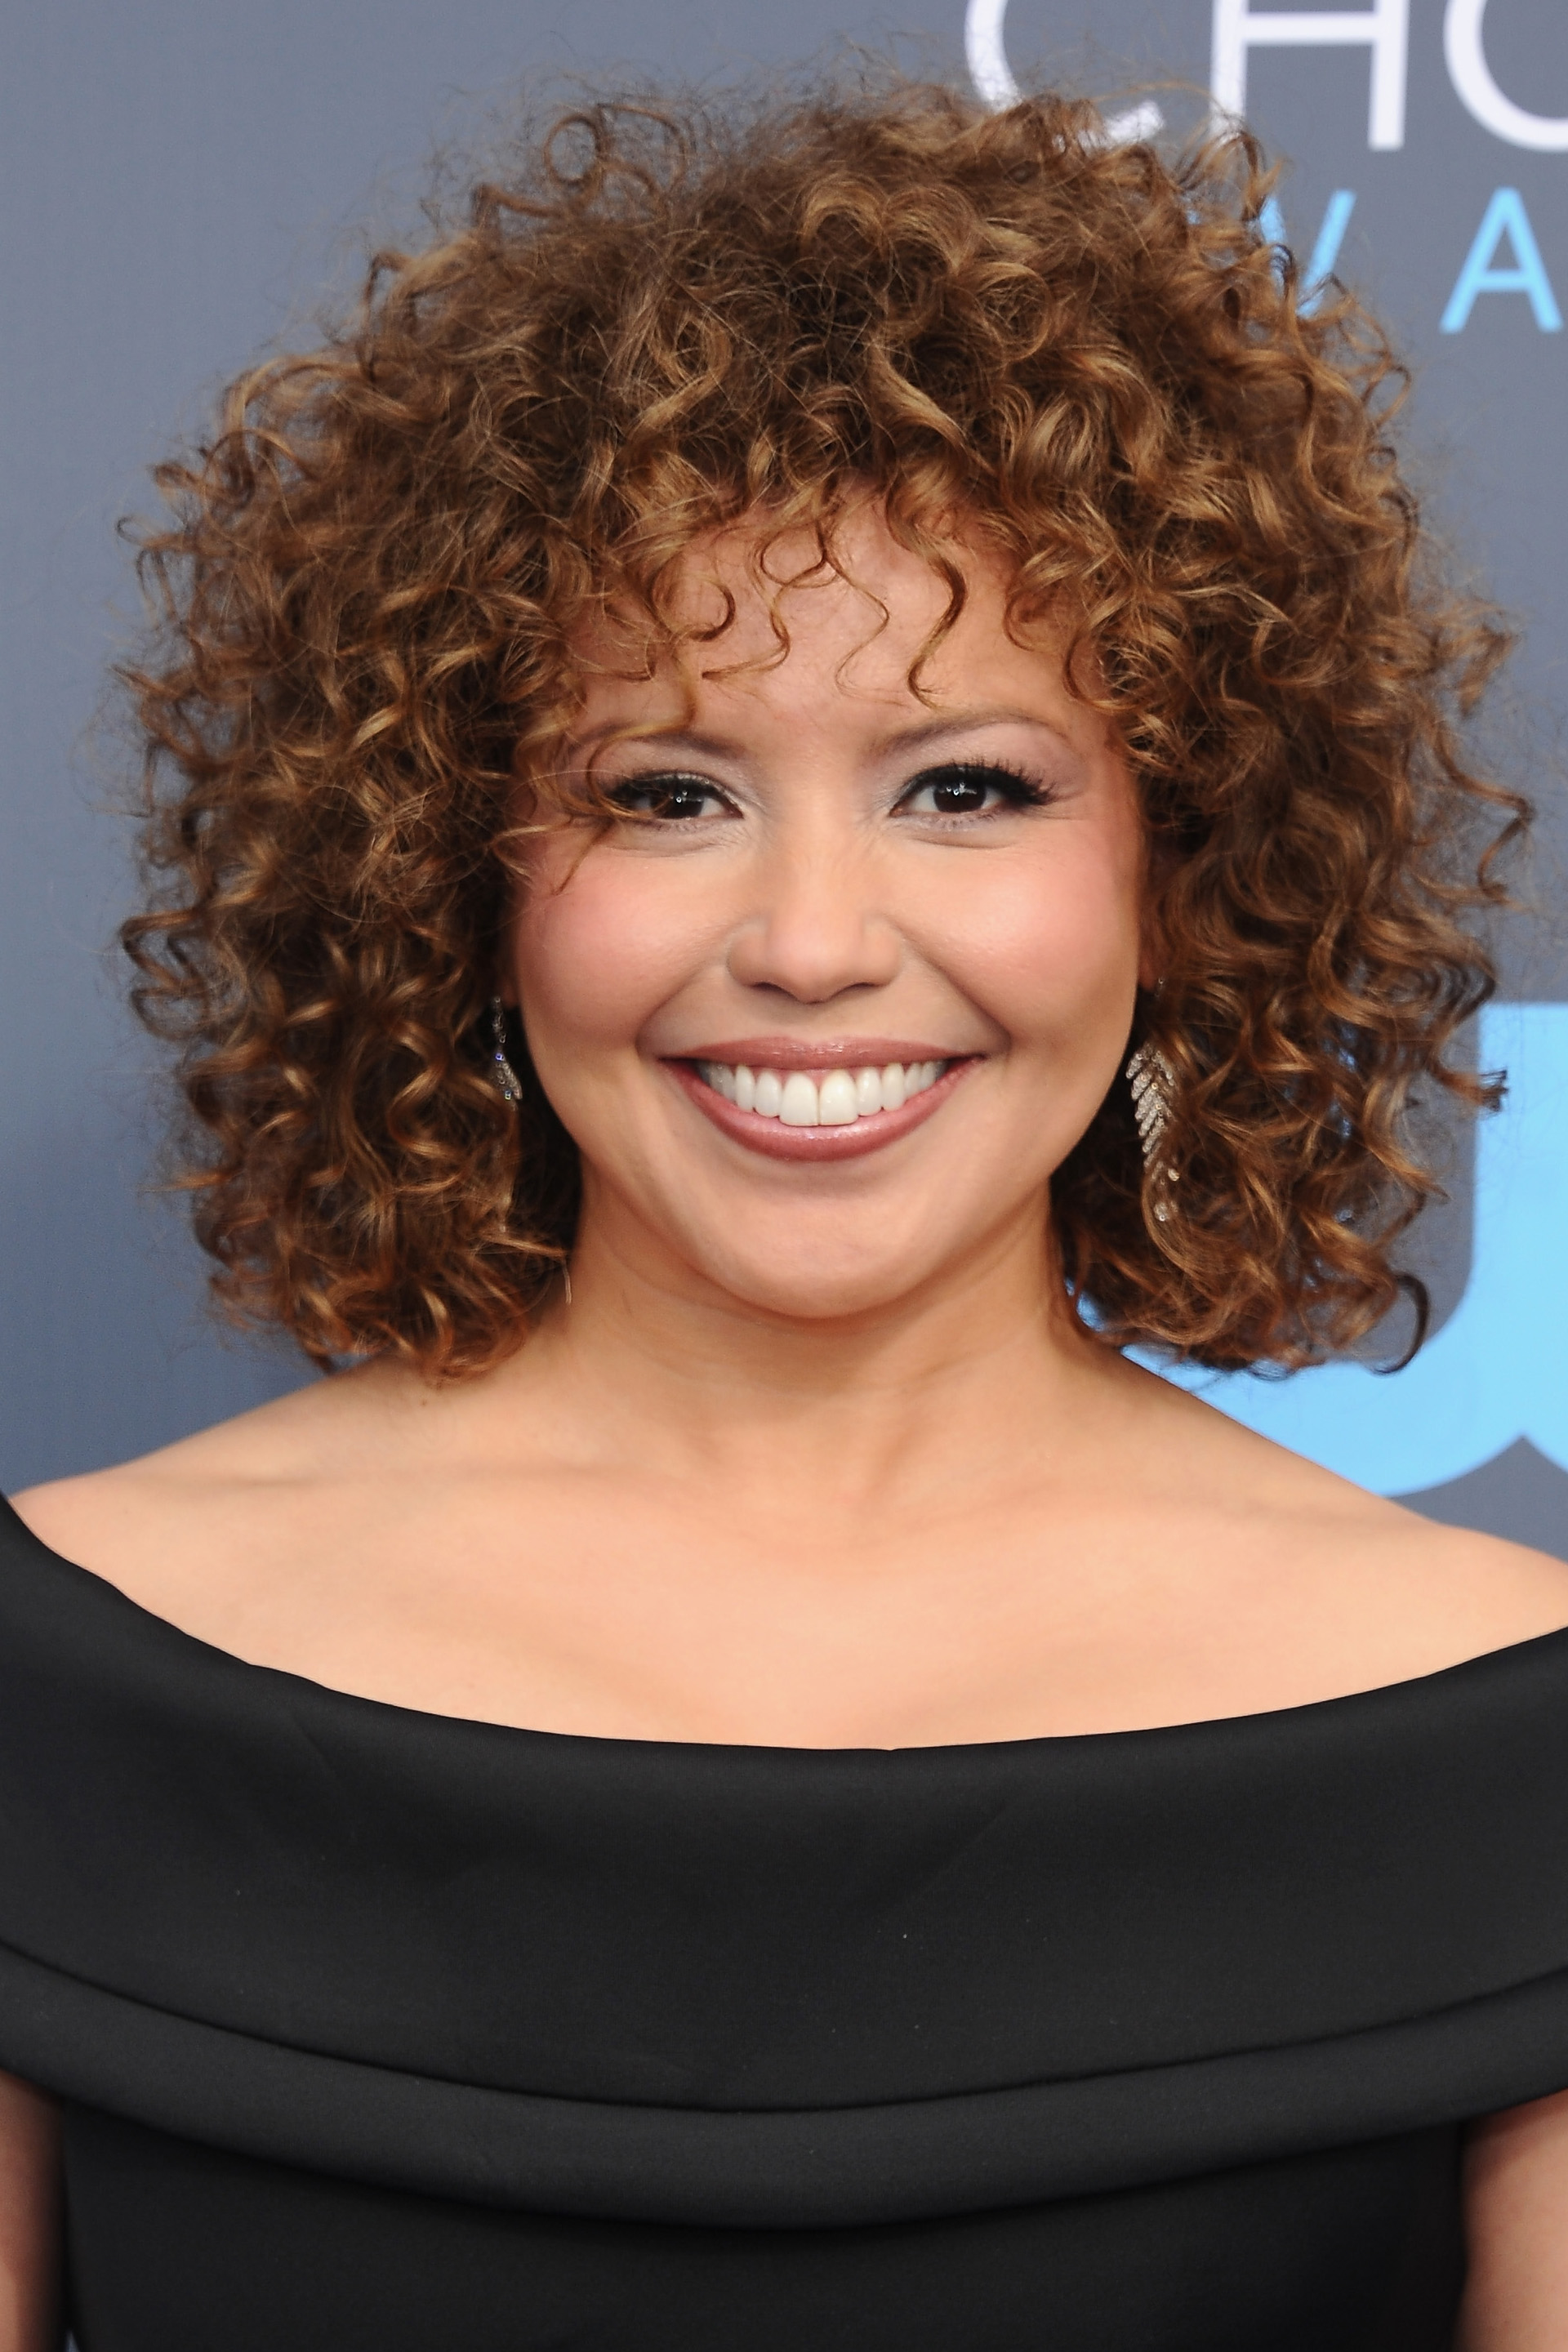 19 Celebrity Short Curly Hair Ideas - Short Haircuts and Hairstyles for Curly Hair